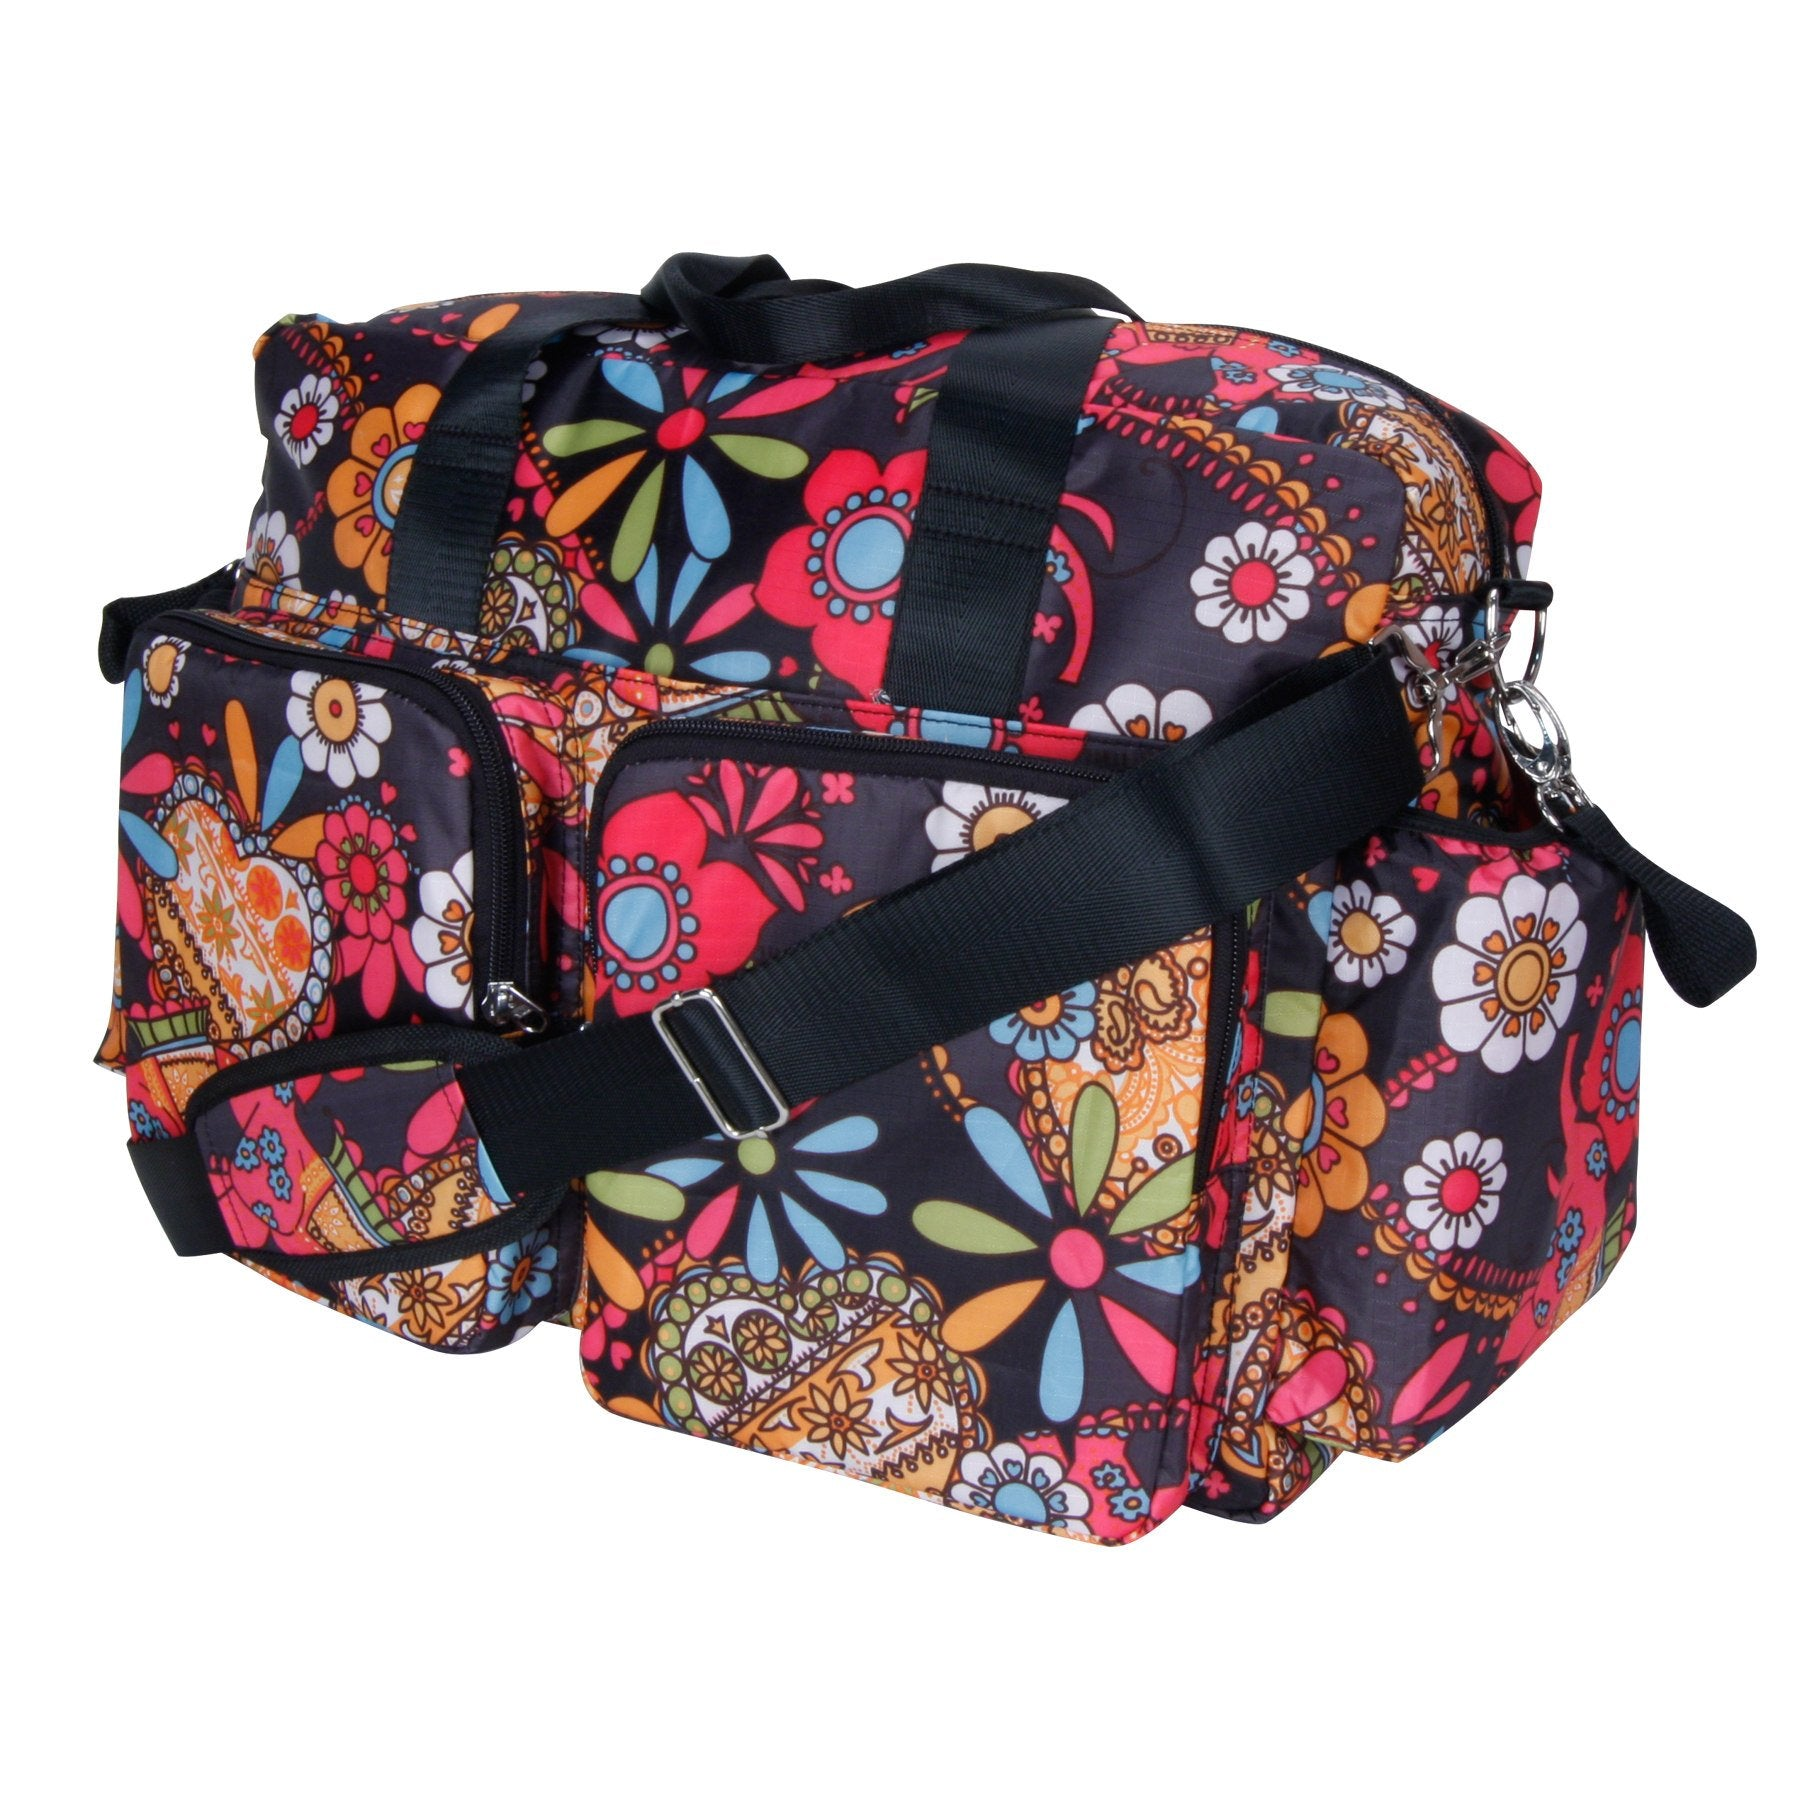 MI 1 Piece Pink Black Floral Large Diaper Bag Babies Baby Nursery Tote Backpack Carrier Flowers Lily Pad Flower Pattern Design Roomy Changing Pad